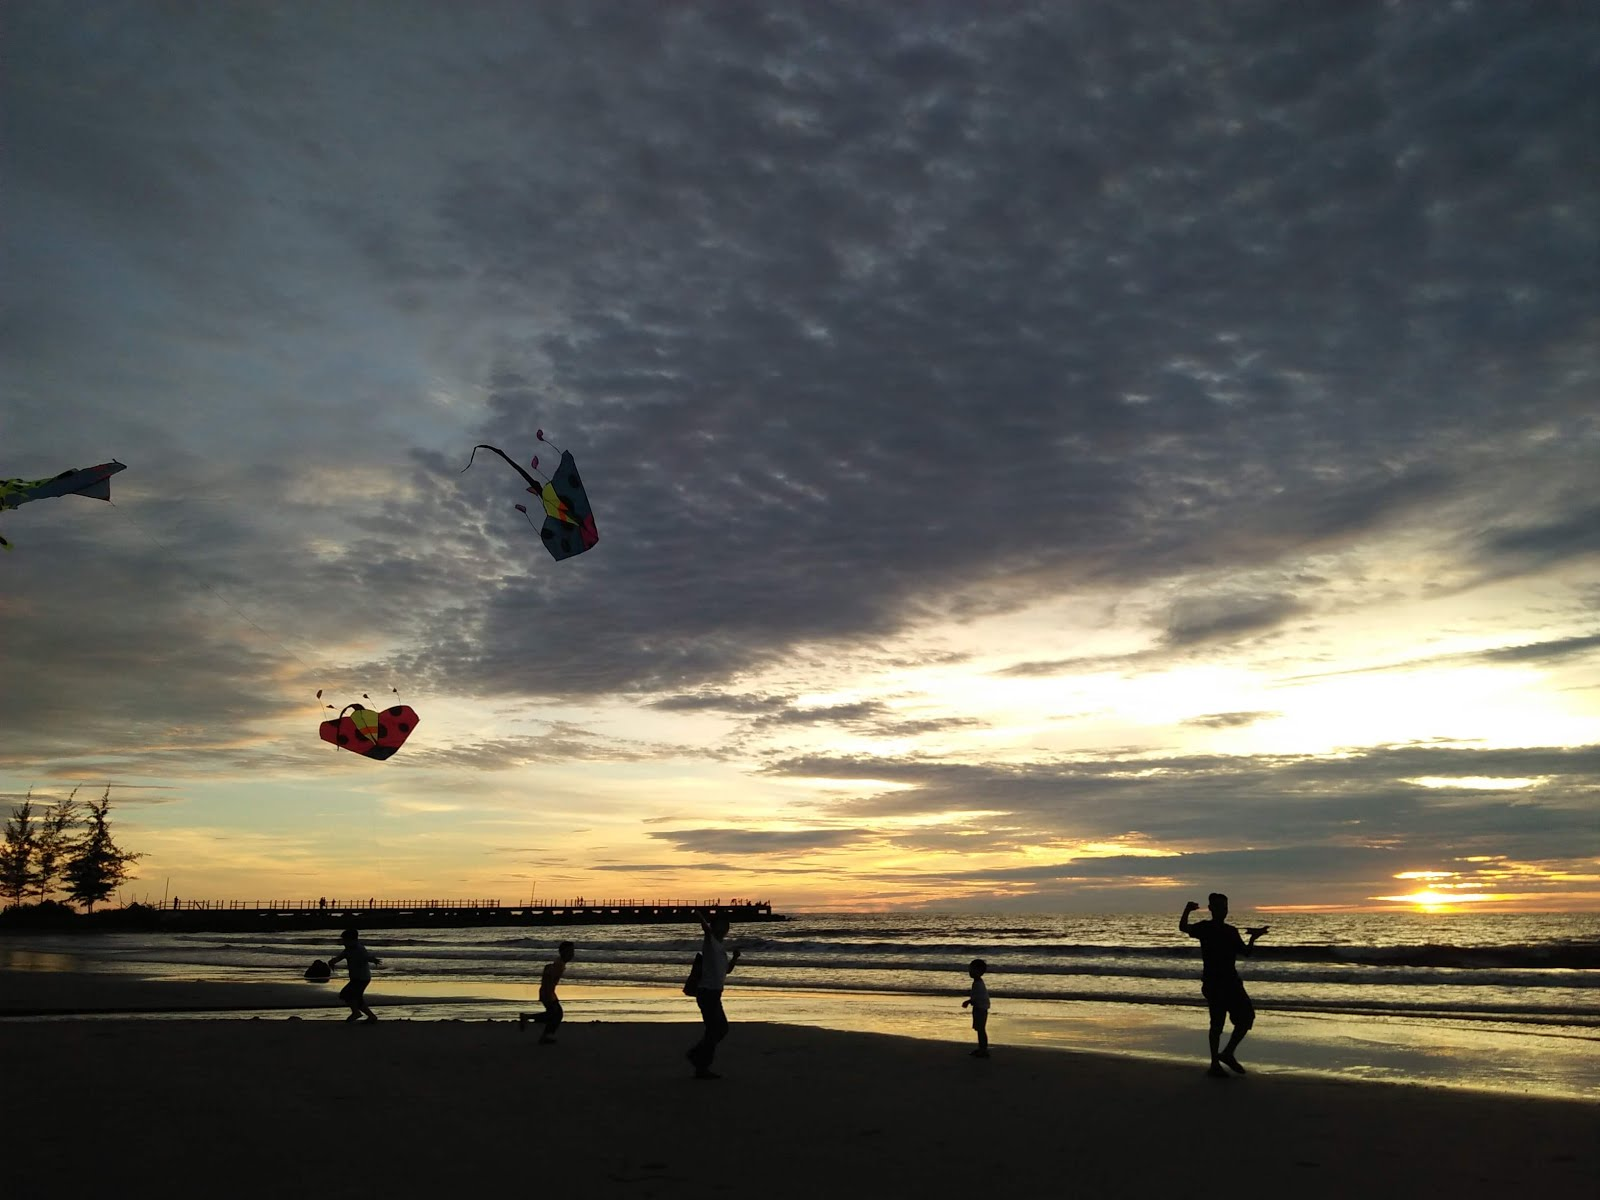 sunset, view, tanjung lobang